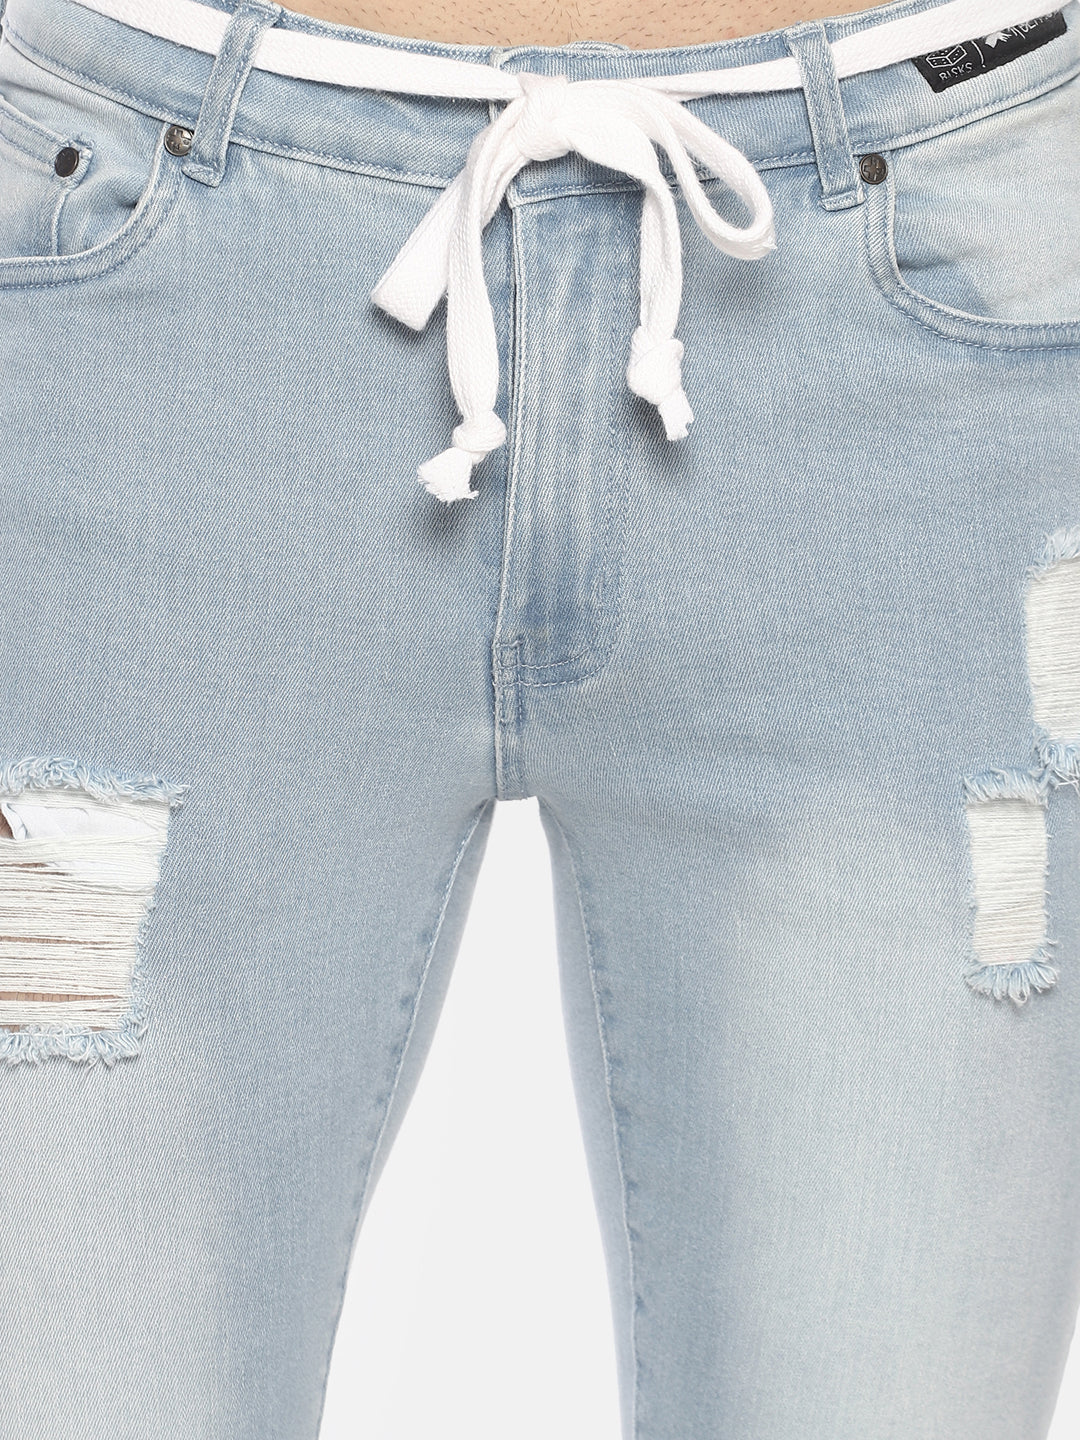 Skinnny denim with tape and distress with bullet hole distress